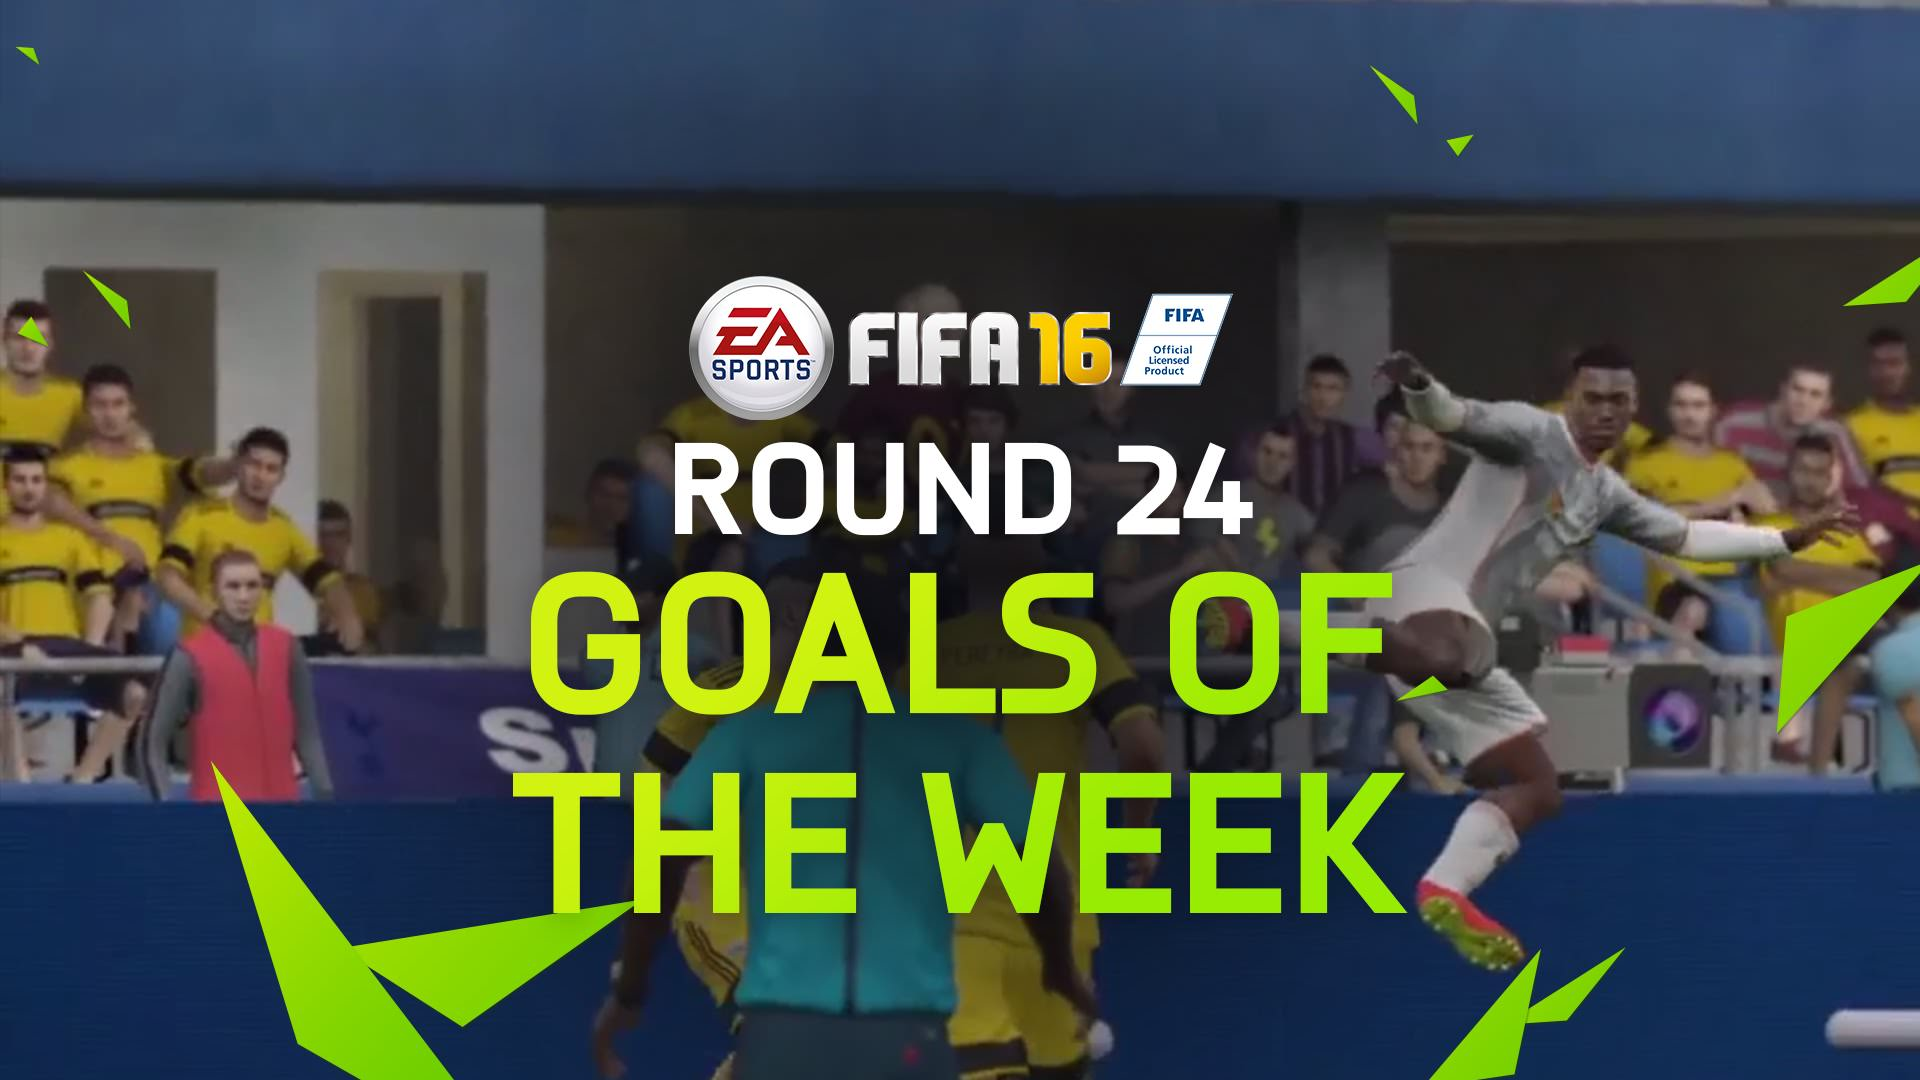 FIFA 16 Goals of the Week 24